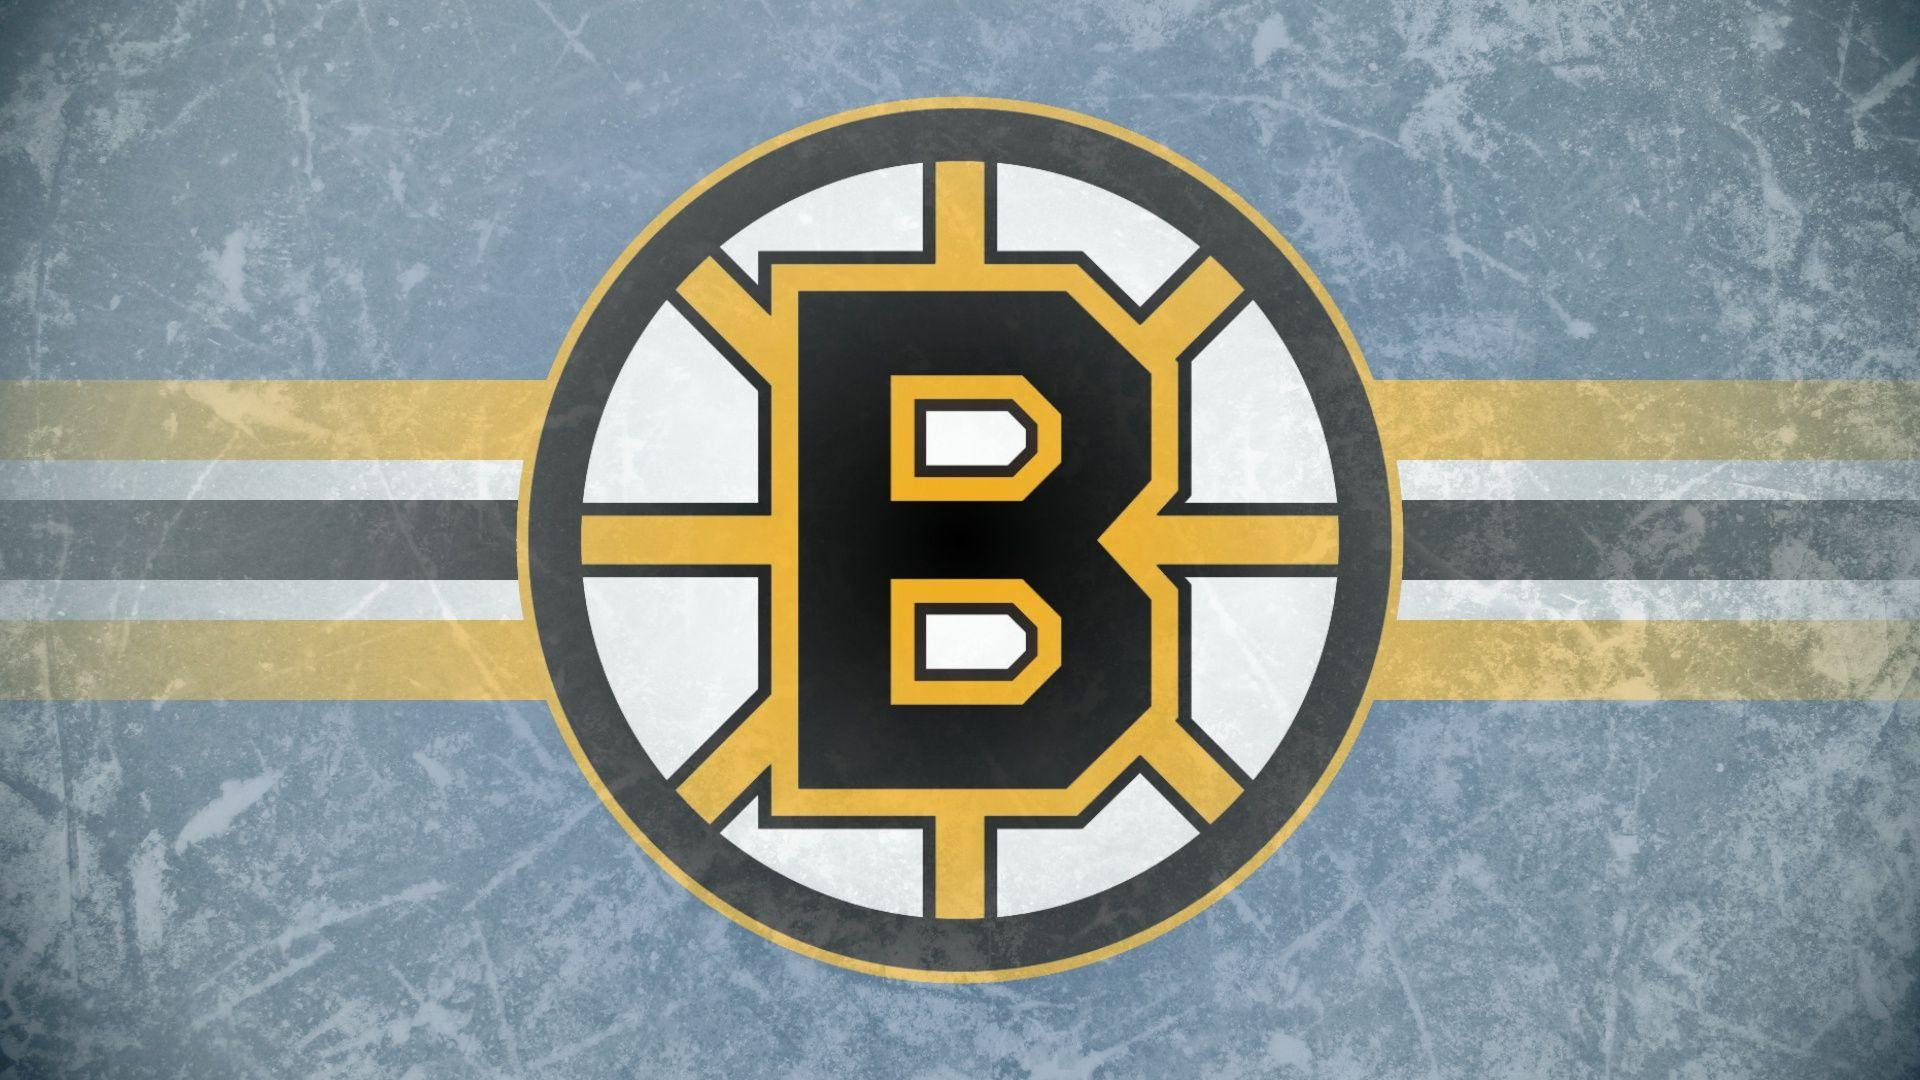 Boston Bruins Wallpaper Bruins Wallpapers - Wa...